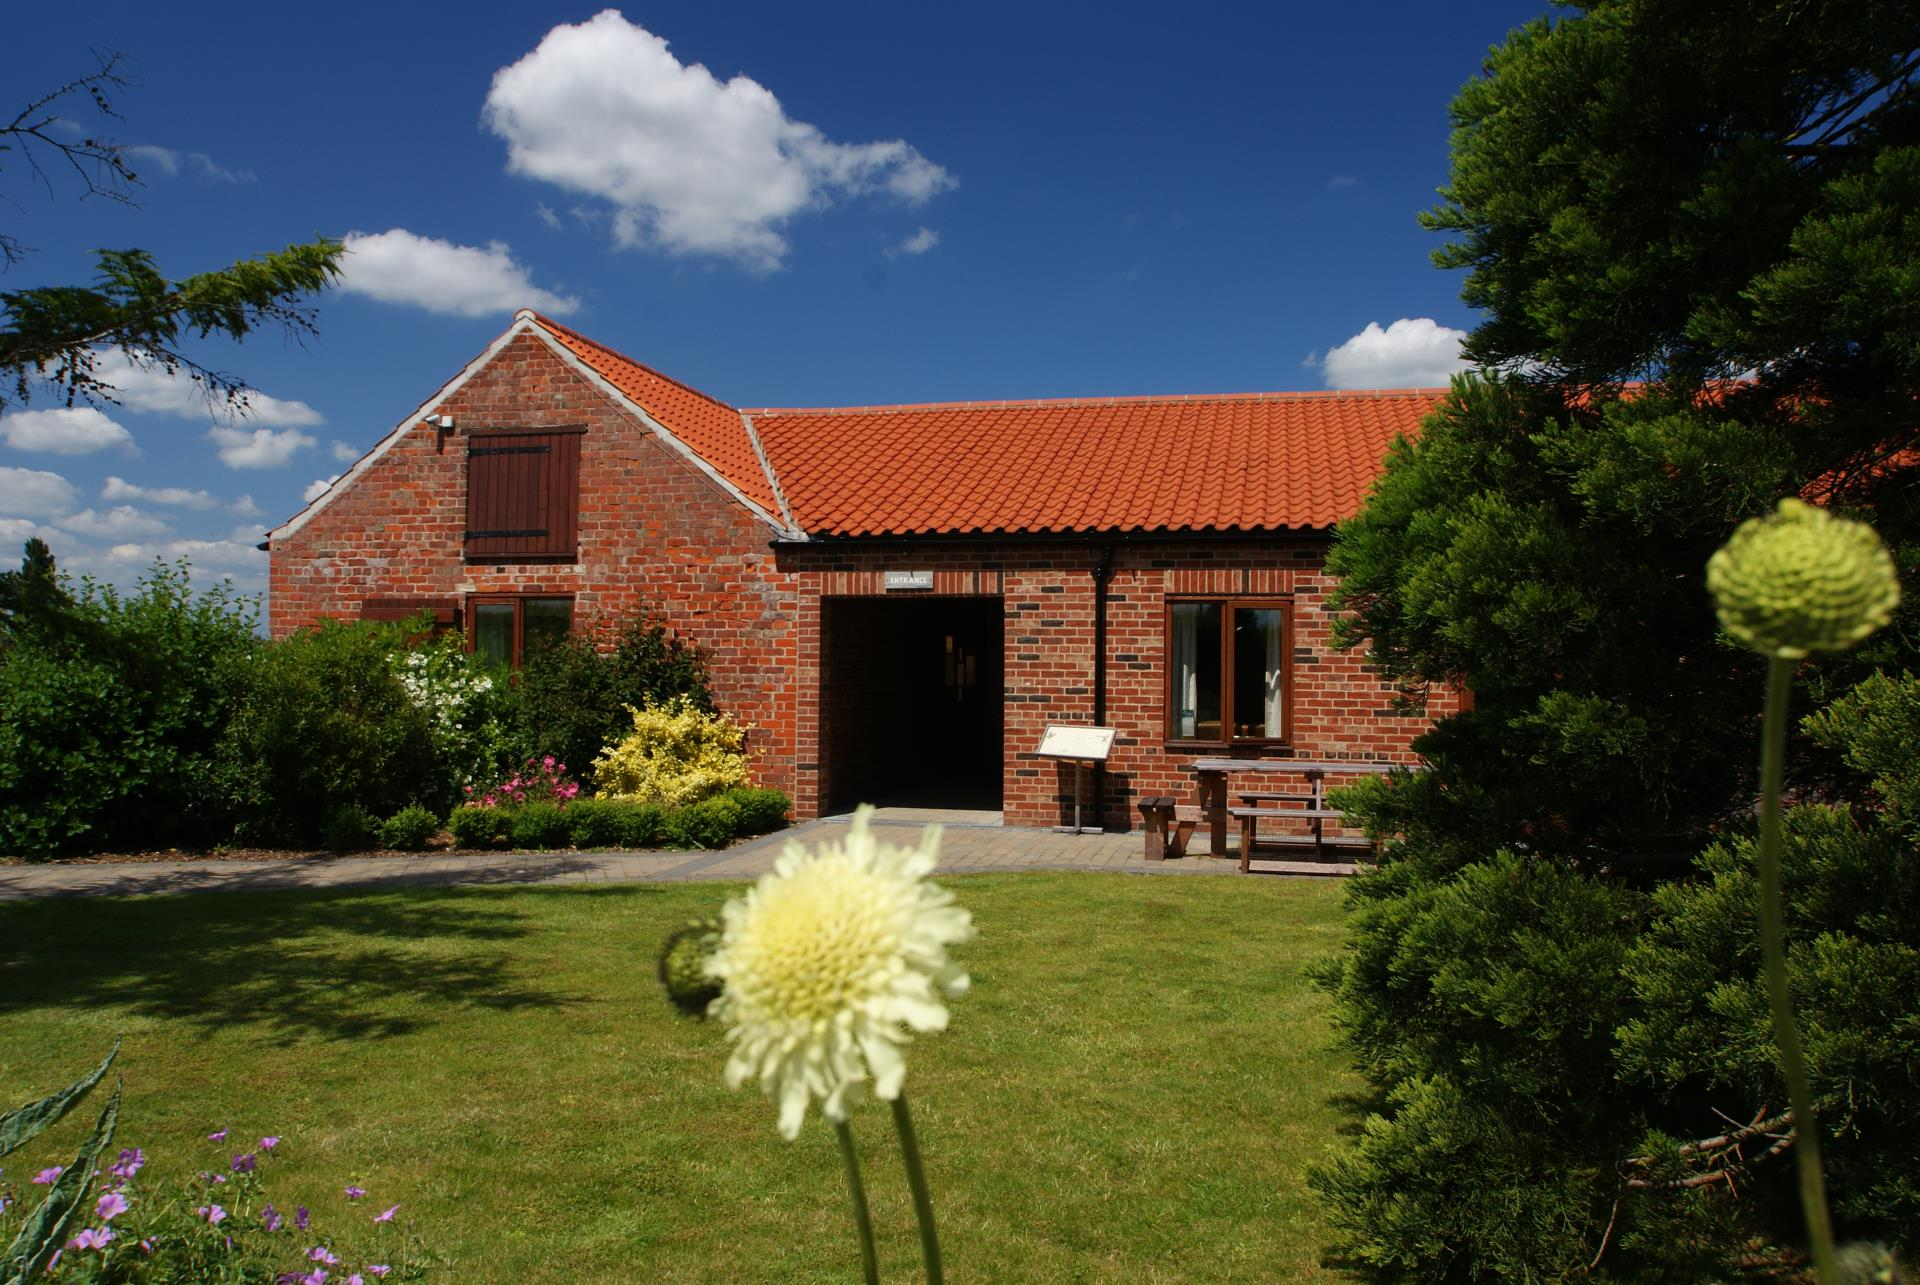 Elms Farm Holiday Cottages. Lincolnshire.